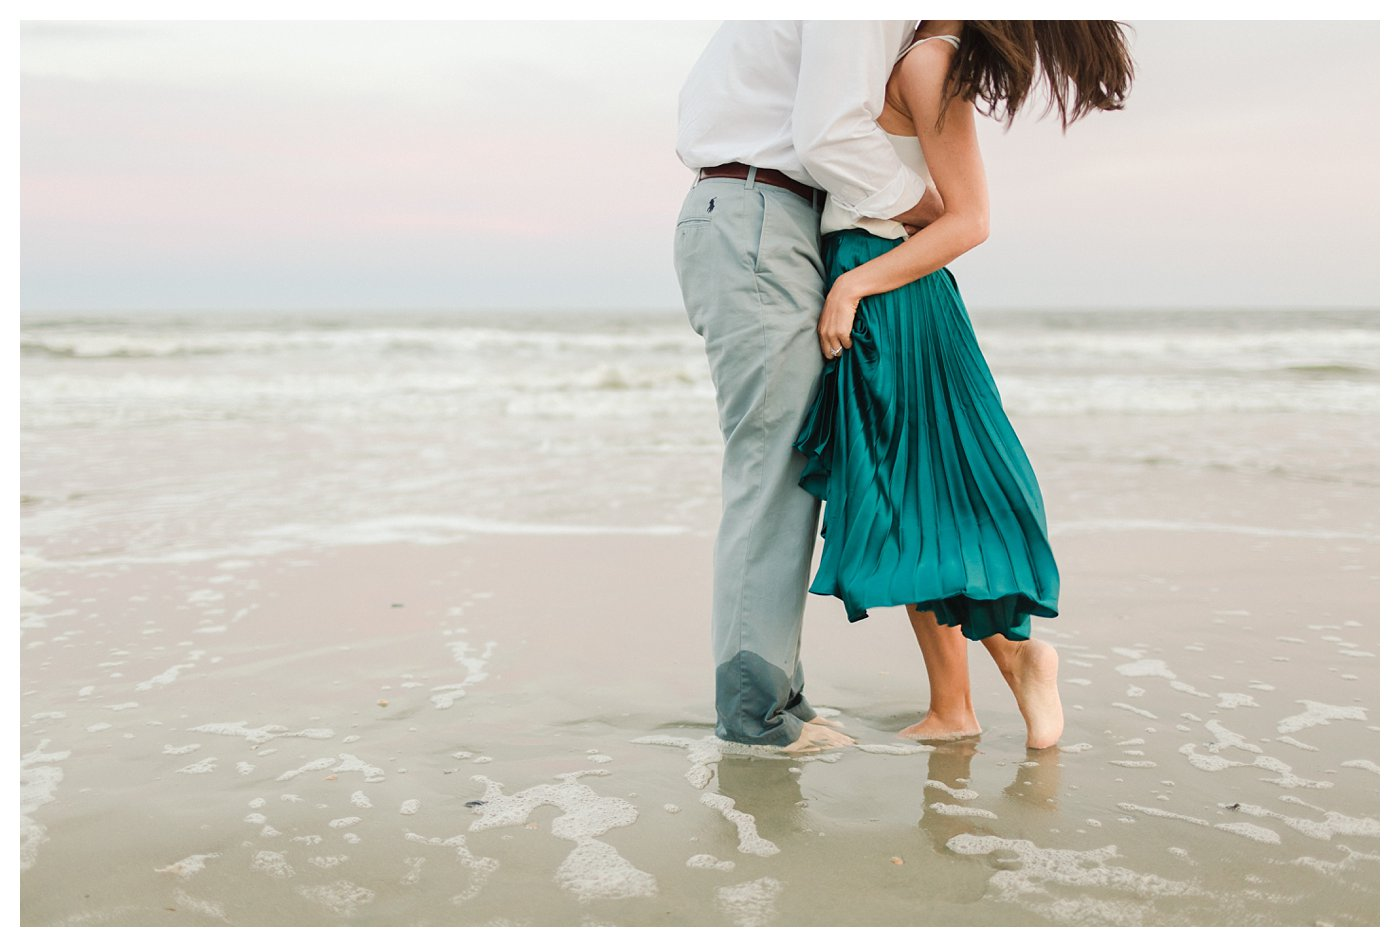 Ocean_Isle_NC_Beach_Coastal_Engagement_Session_Turqoise_White_Candlelit_0009.jpg